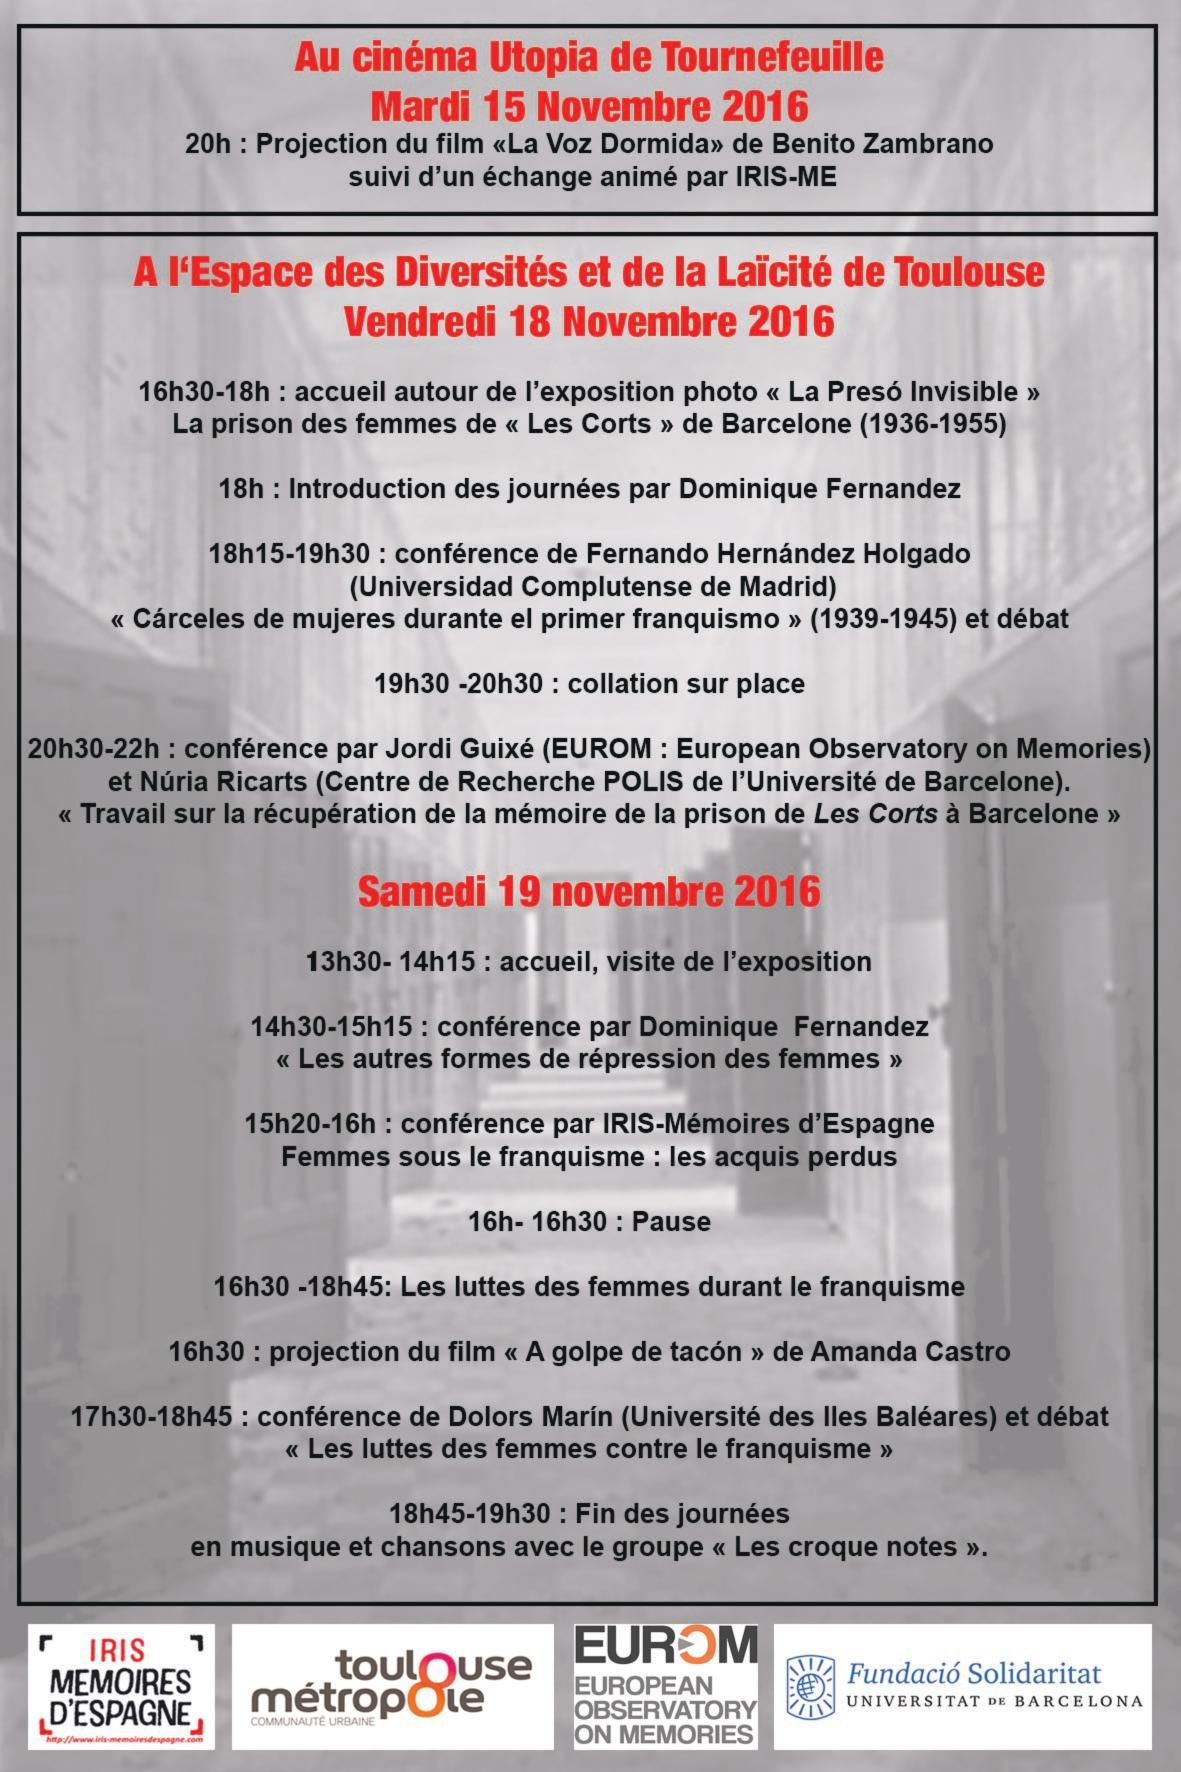 Movies about repression againts women during Francoism will be presented during the seminar in Toulouse